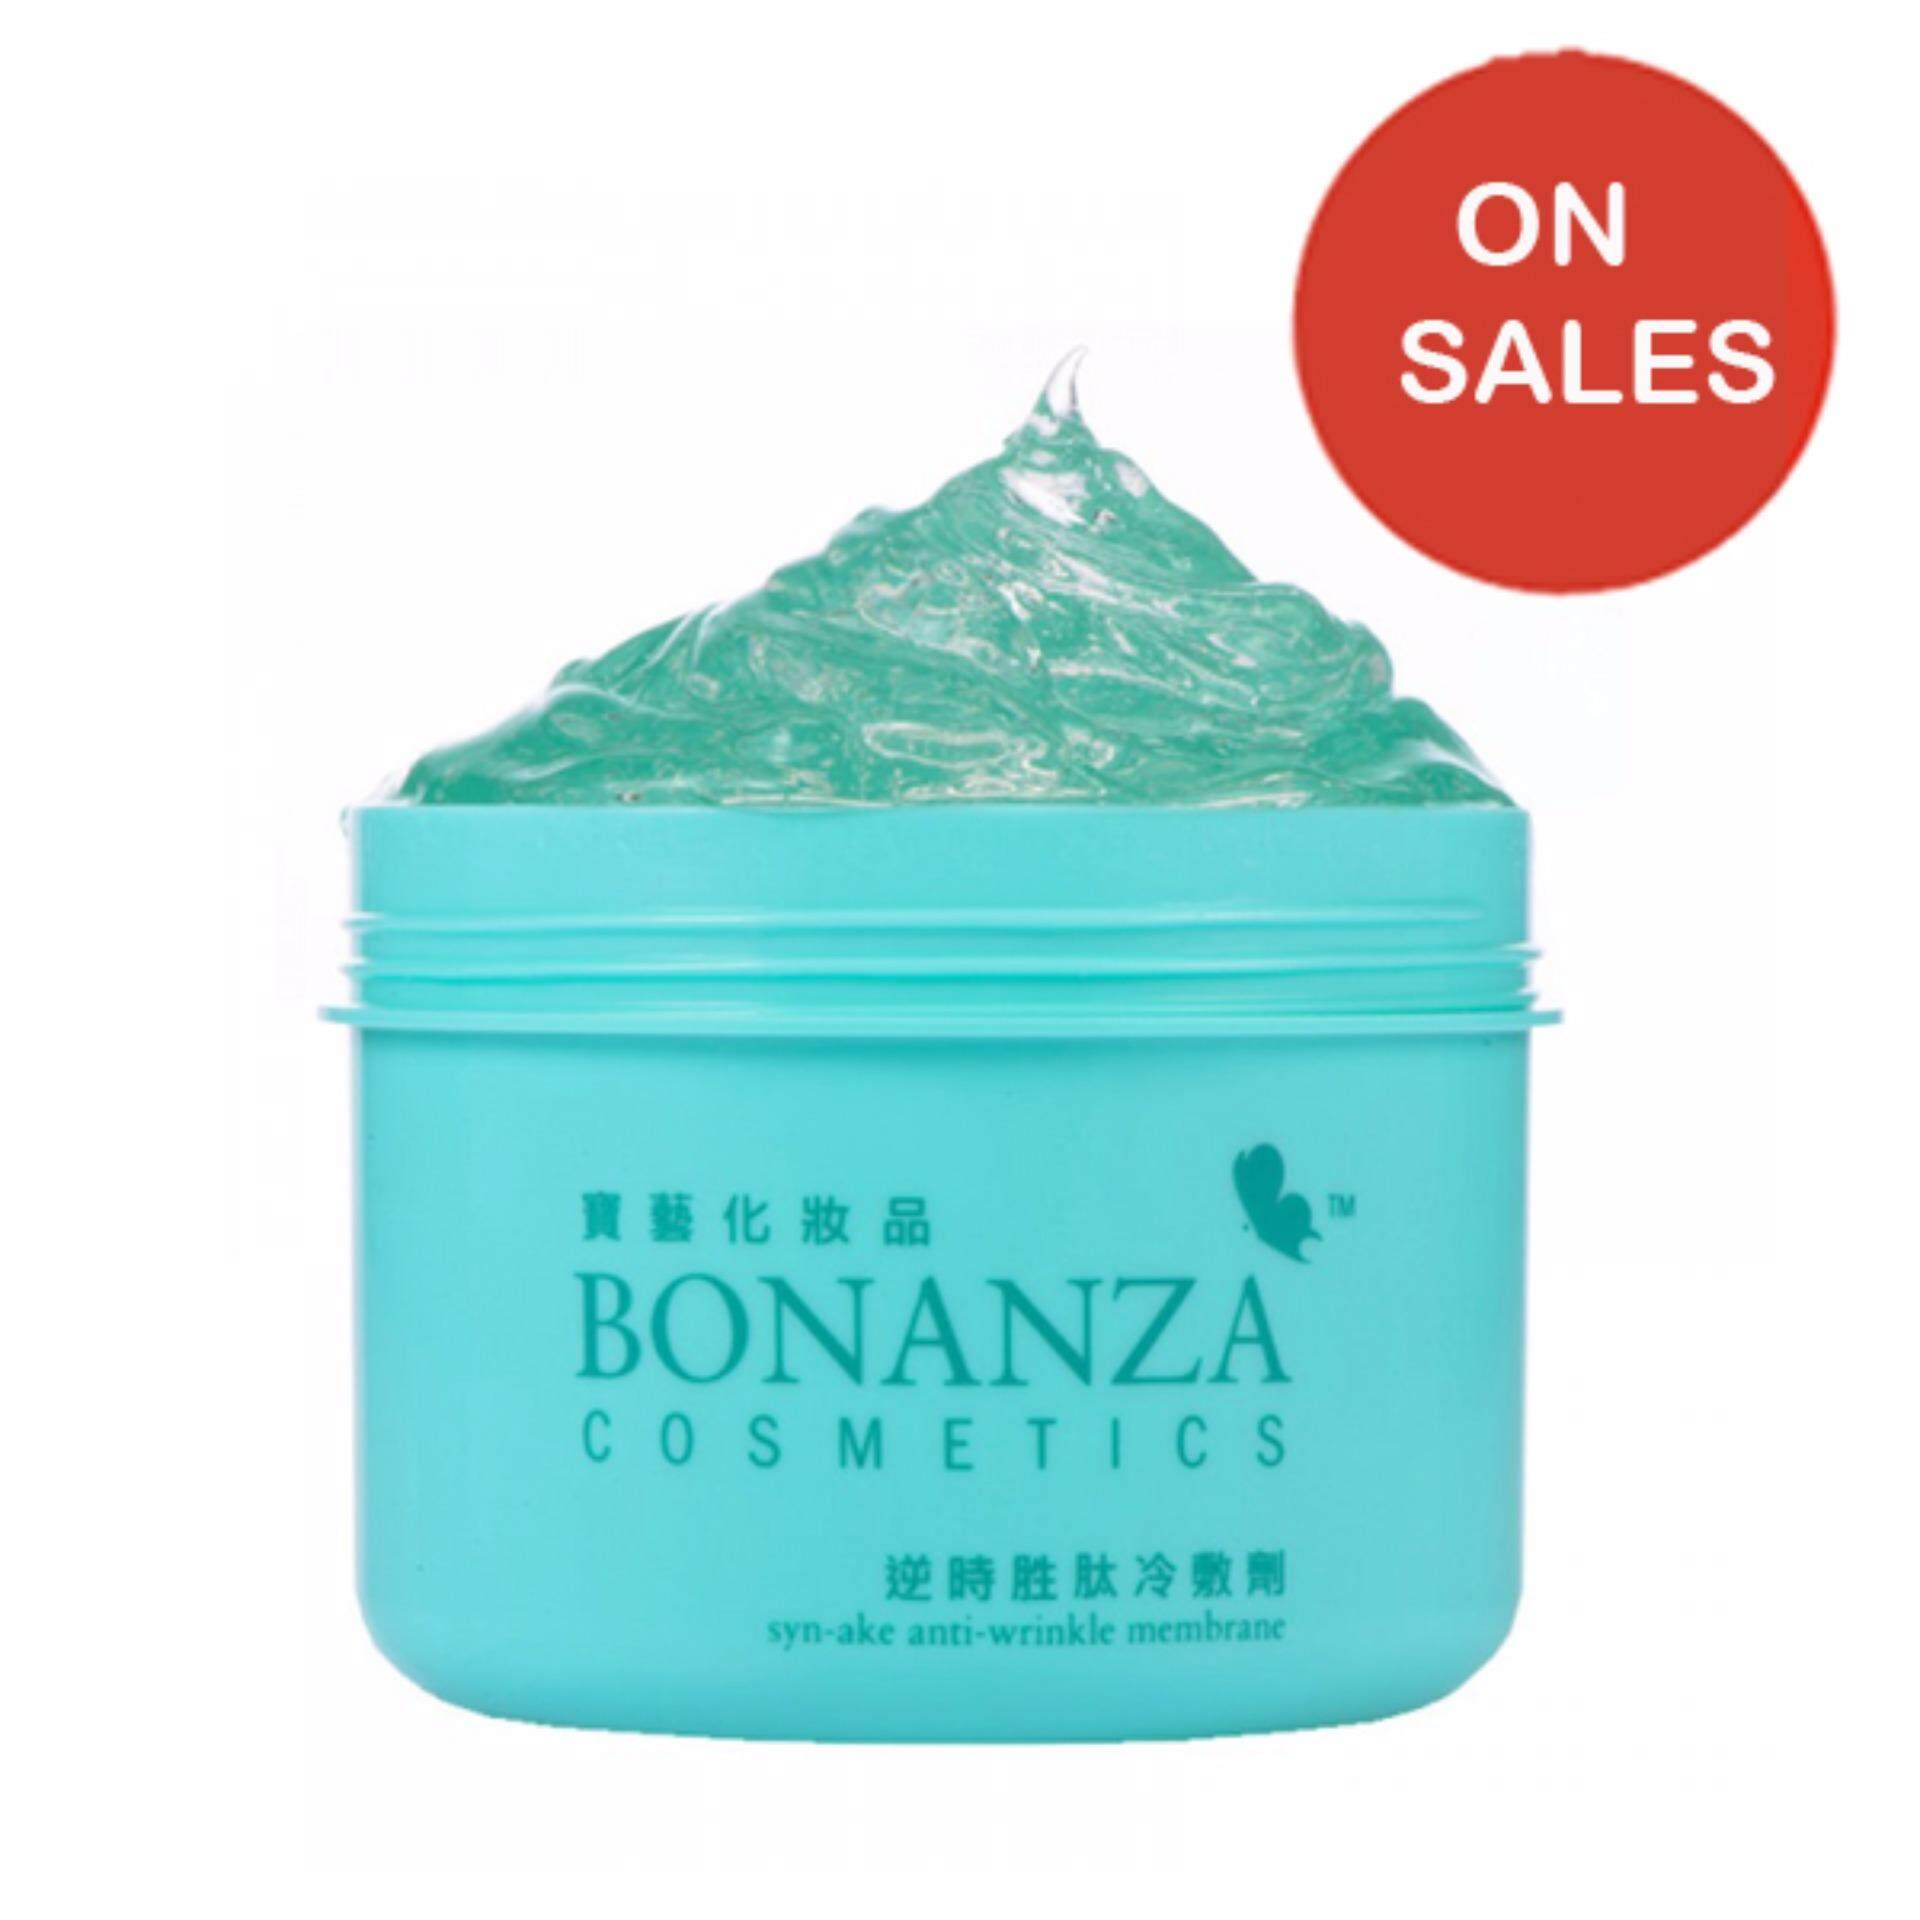 Bonanza  Anti Wrinkle Membrane Mask 250g